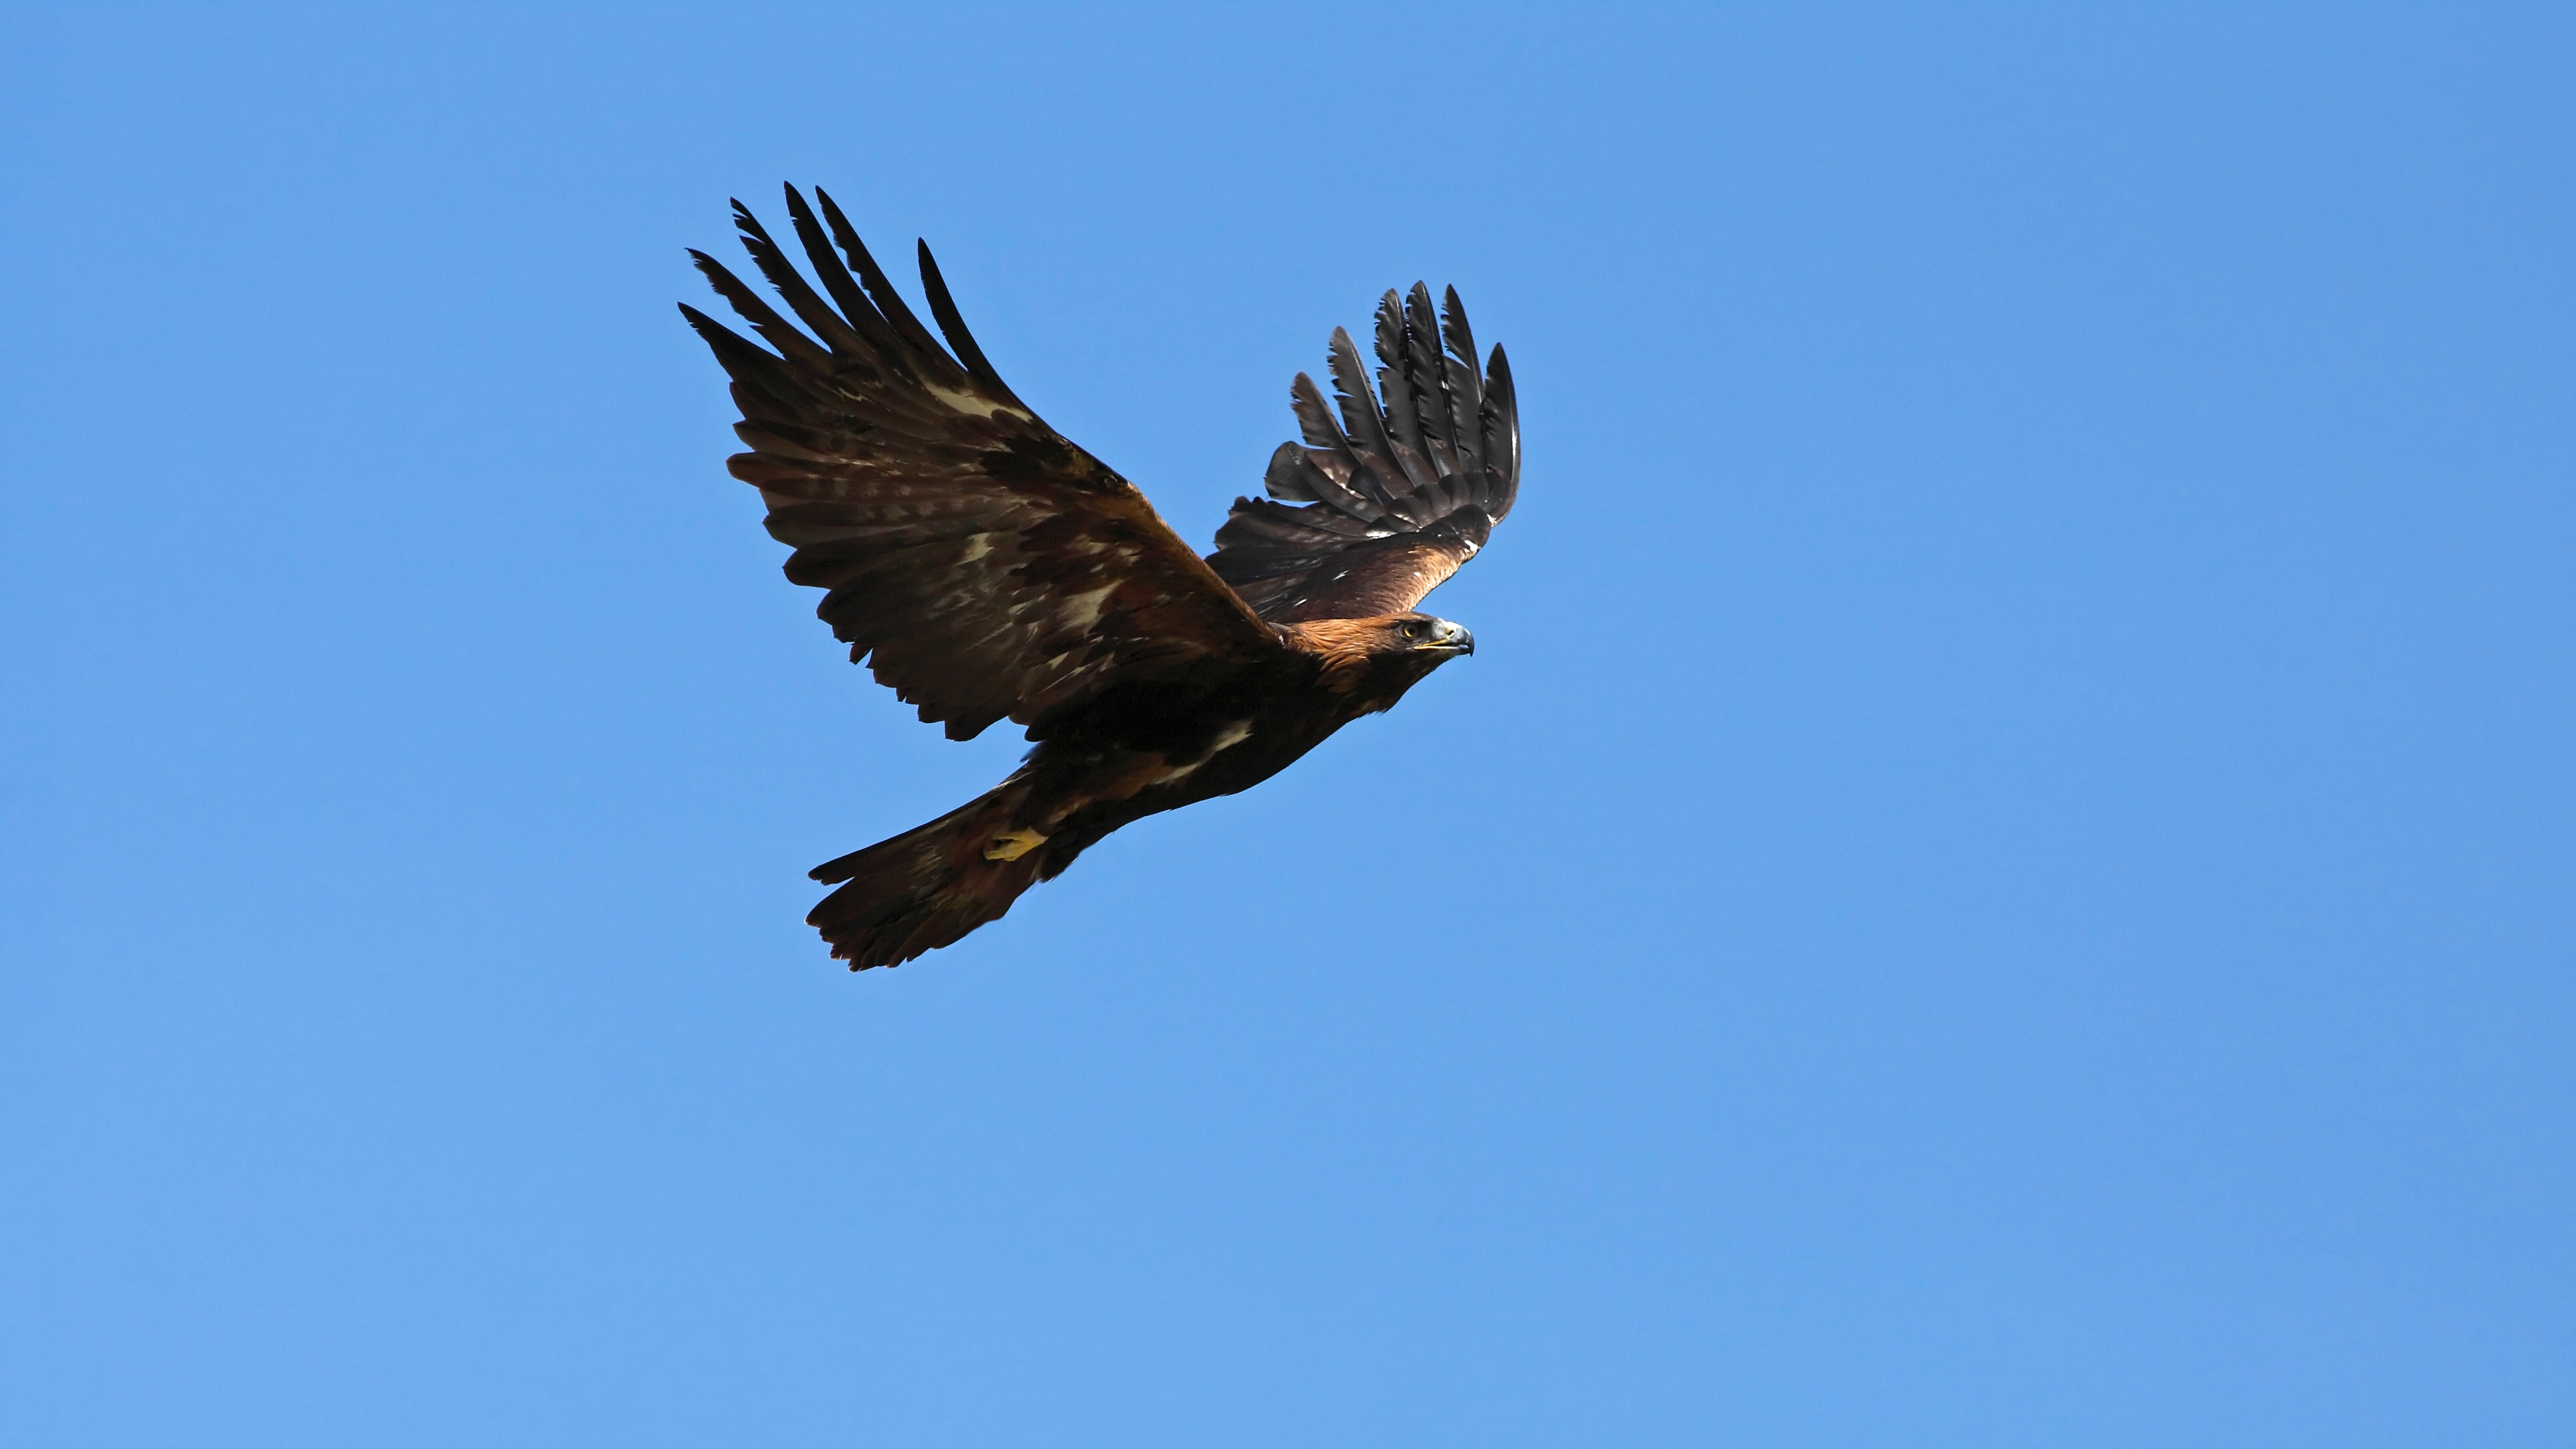 The First Yellowstone Golden Eagle Fitted With a GPS Tracker Was Poisoned by a Lead Bullet